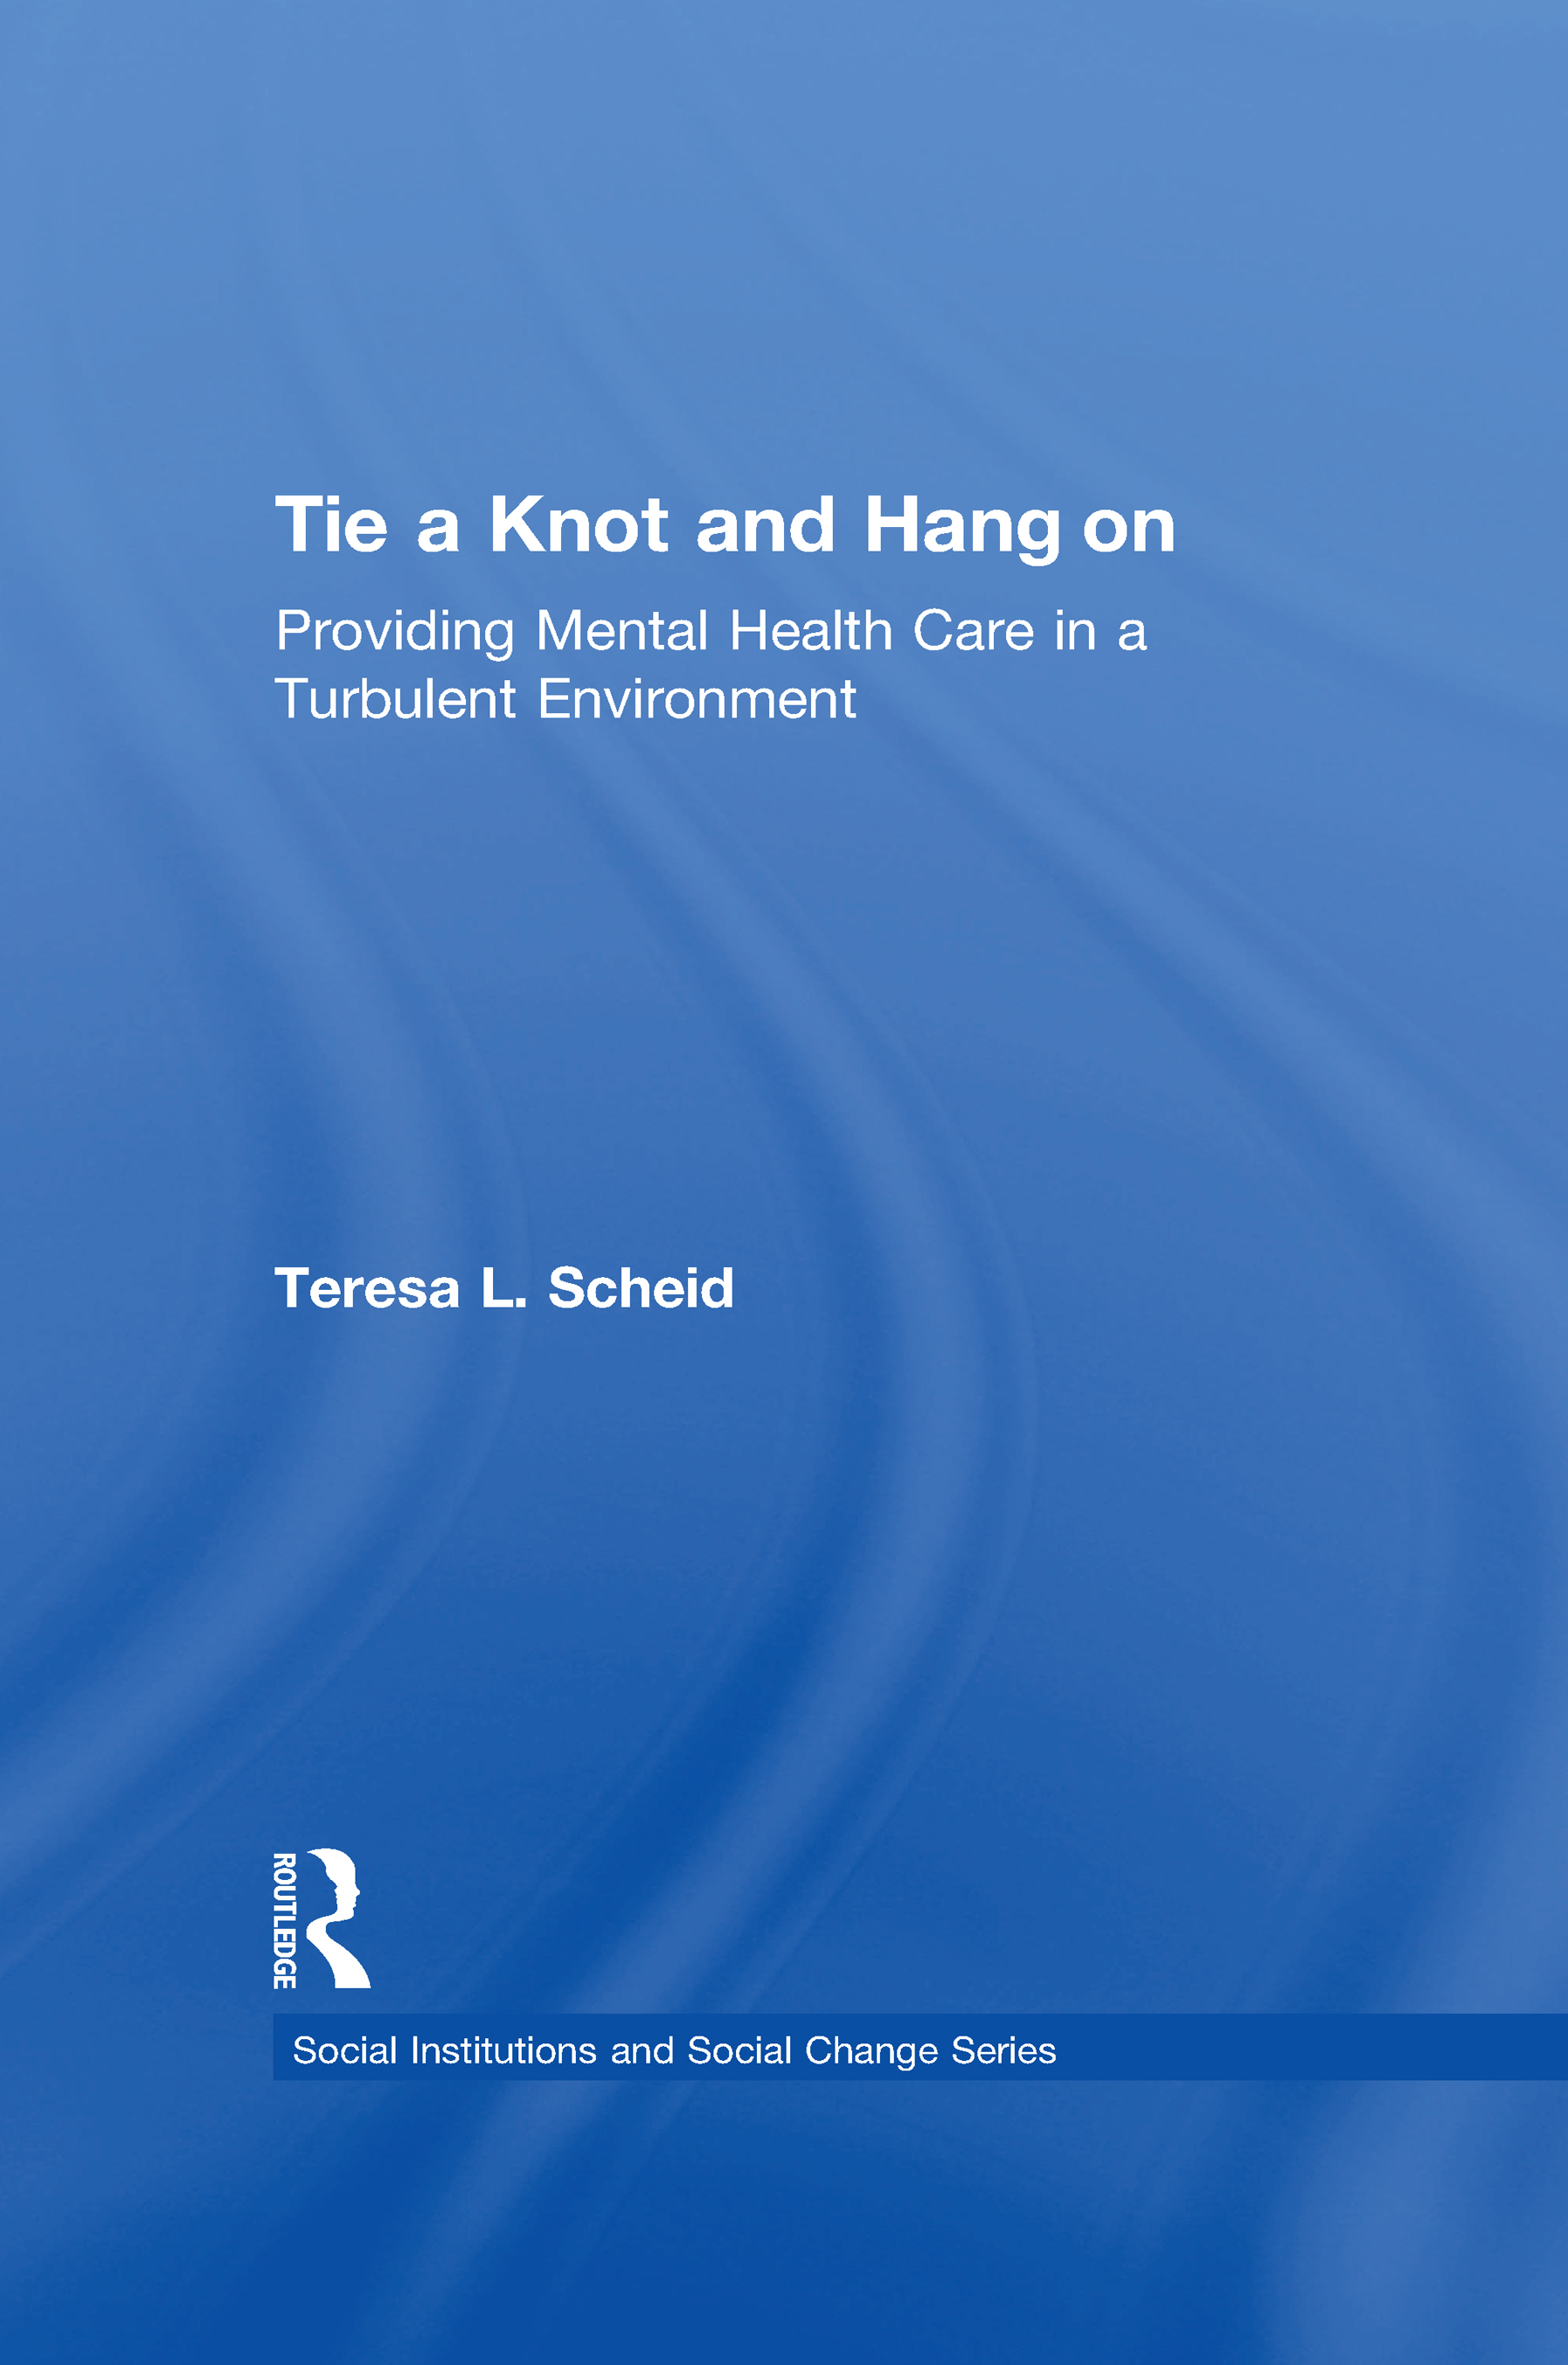 Tie A Knot and Hang On